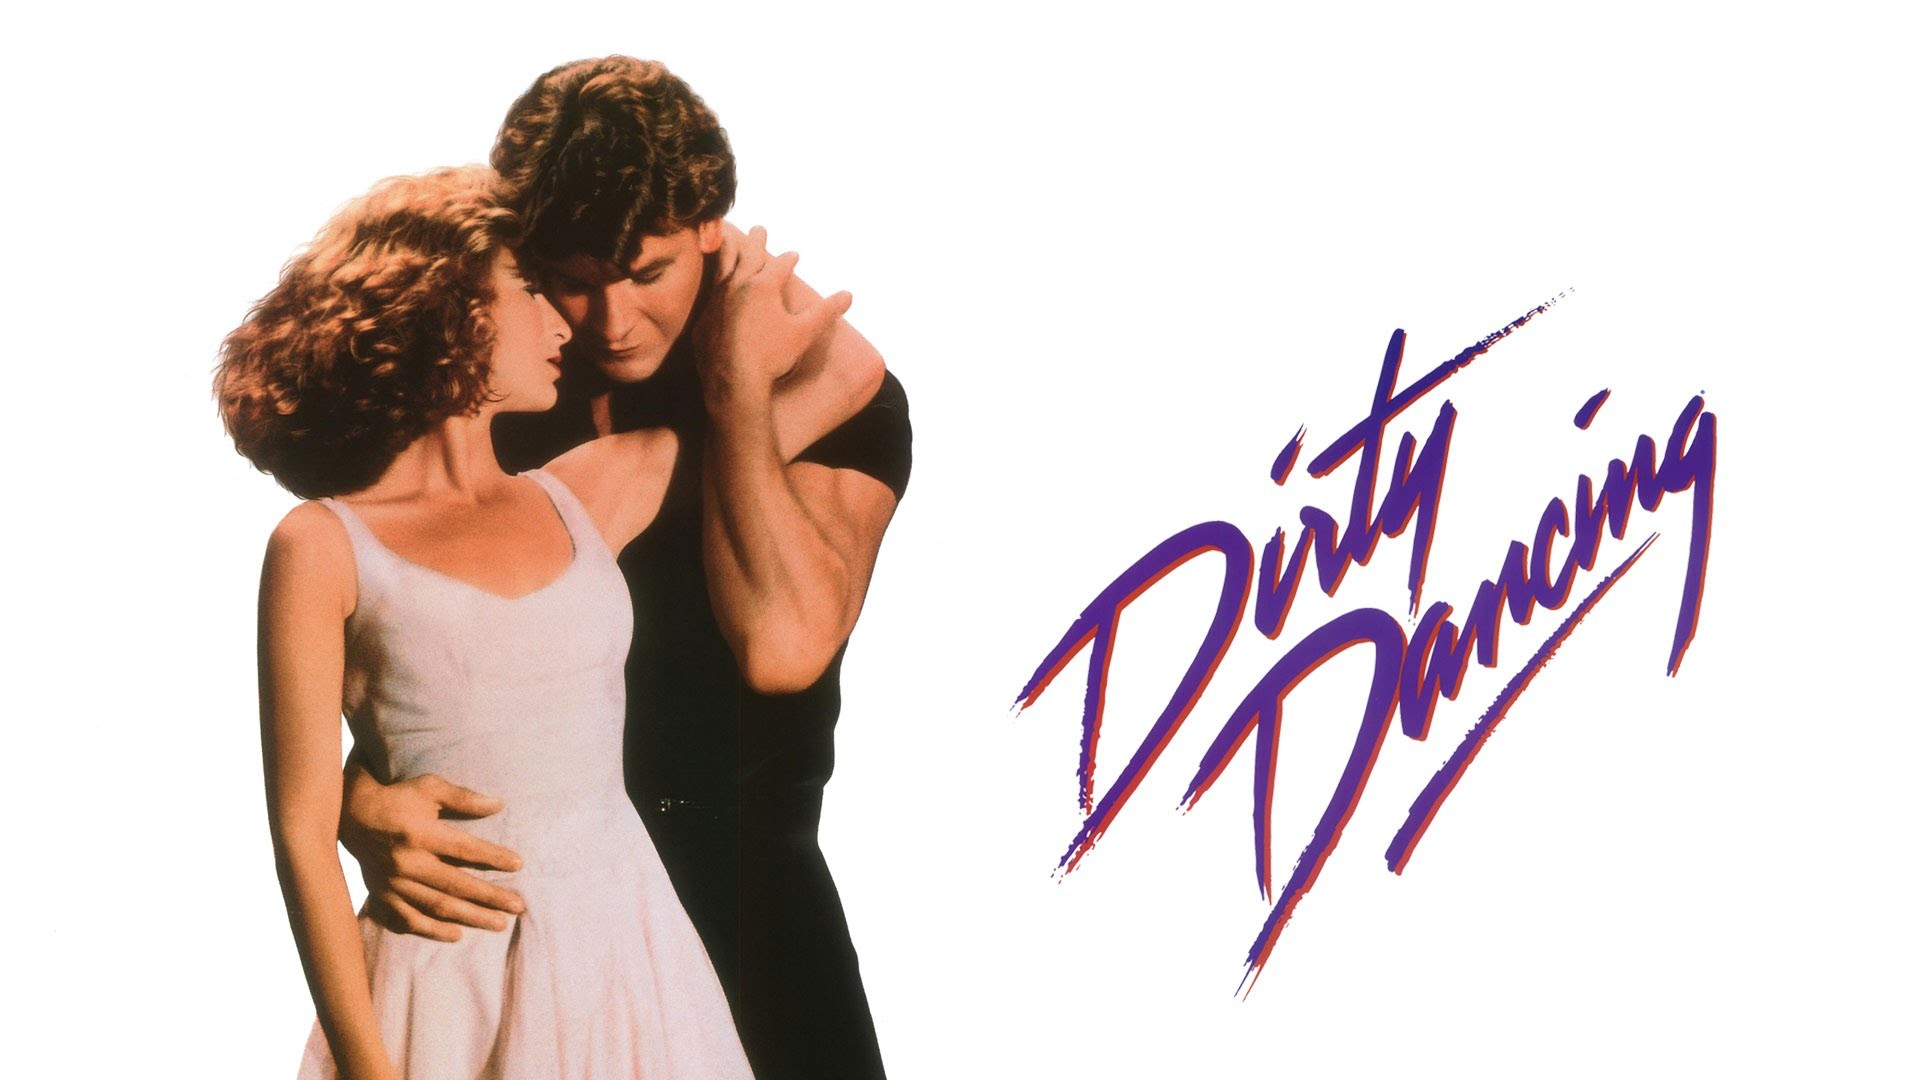 82 Dirty Dancing Wallpapers on WallpaperPlay 1920x1080